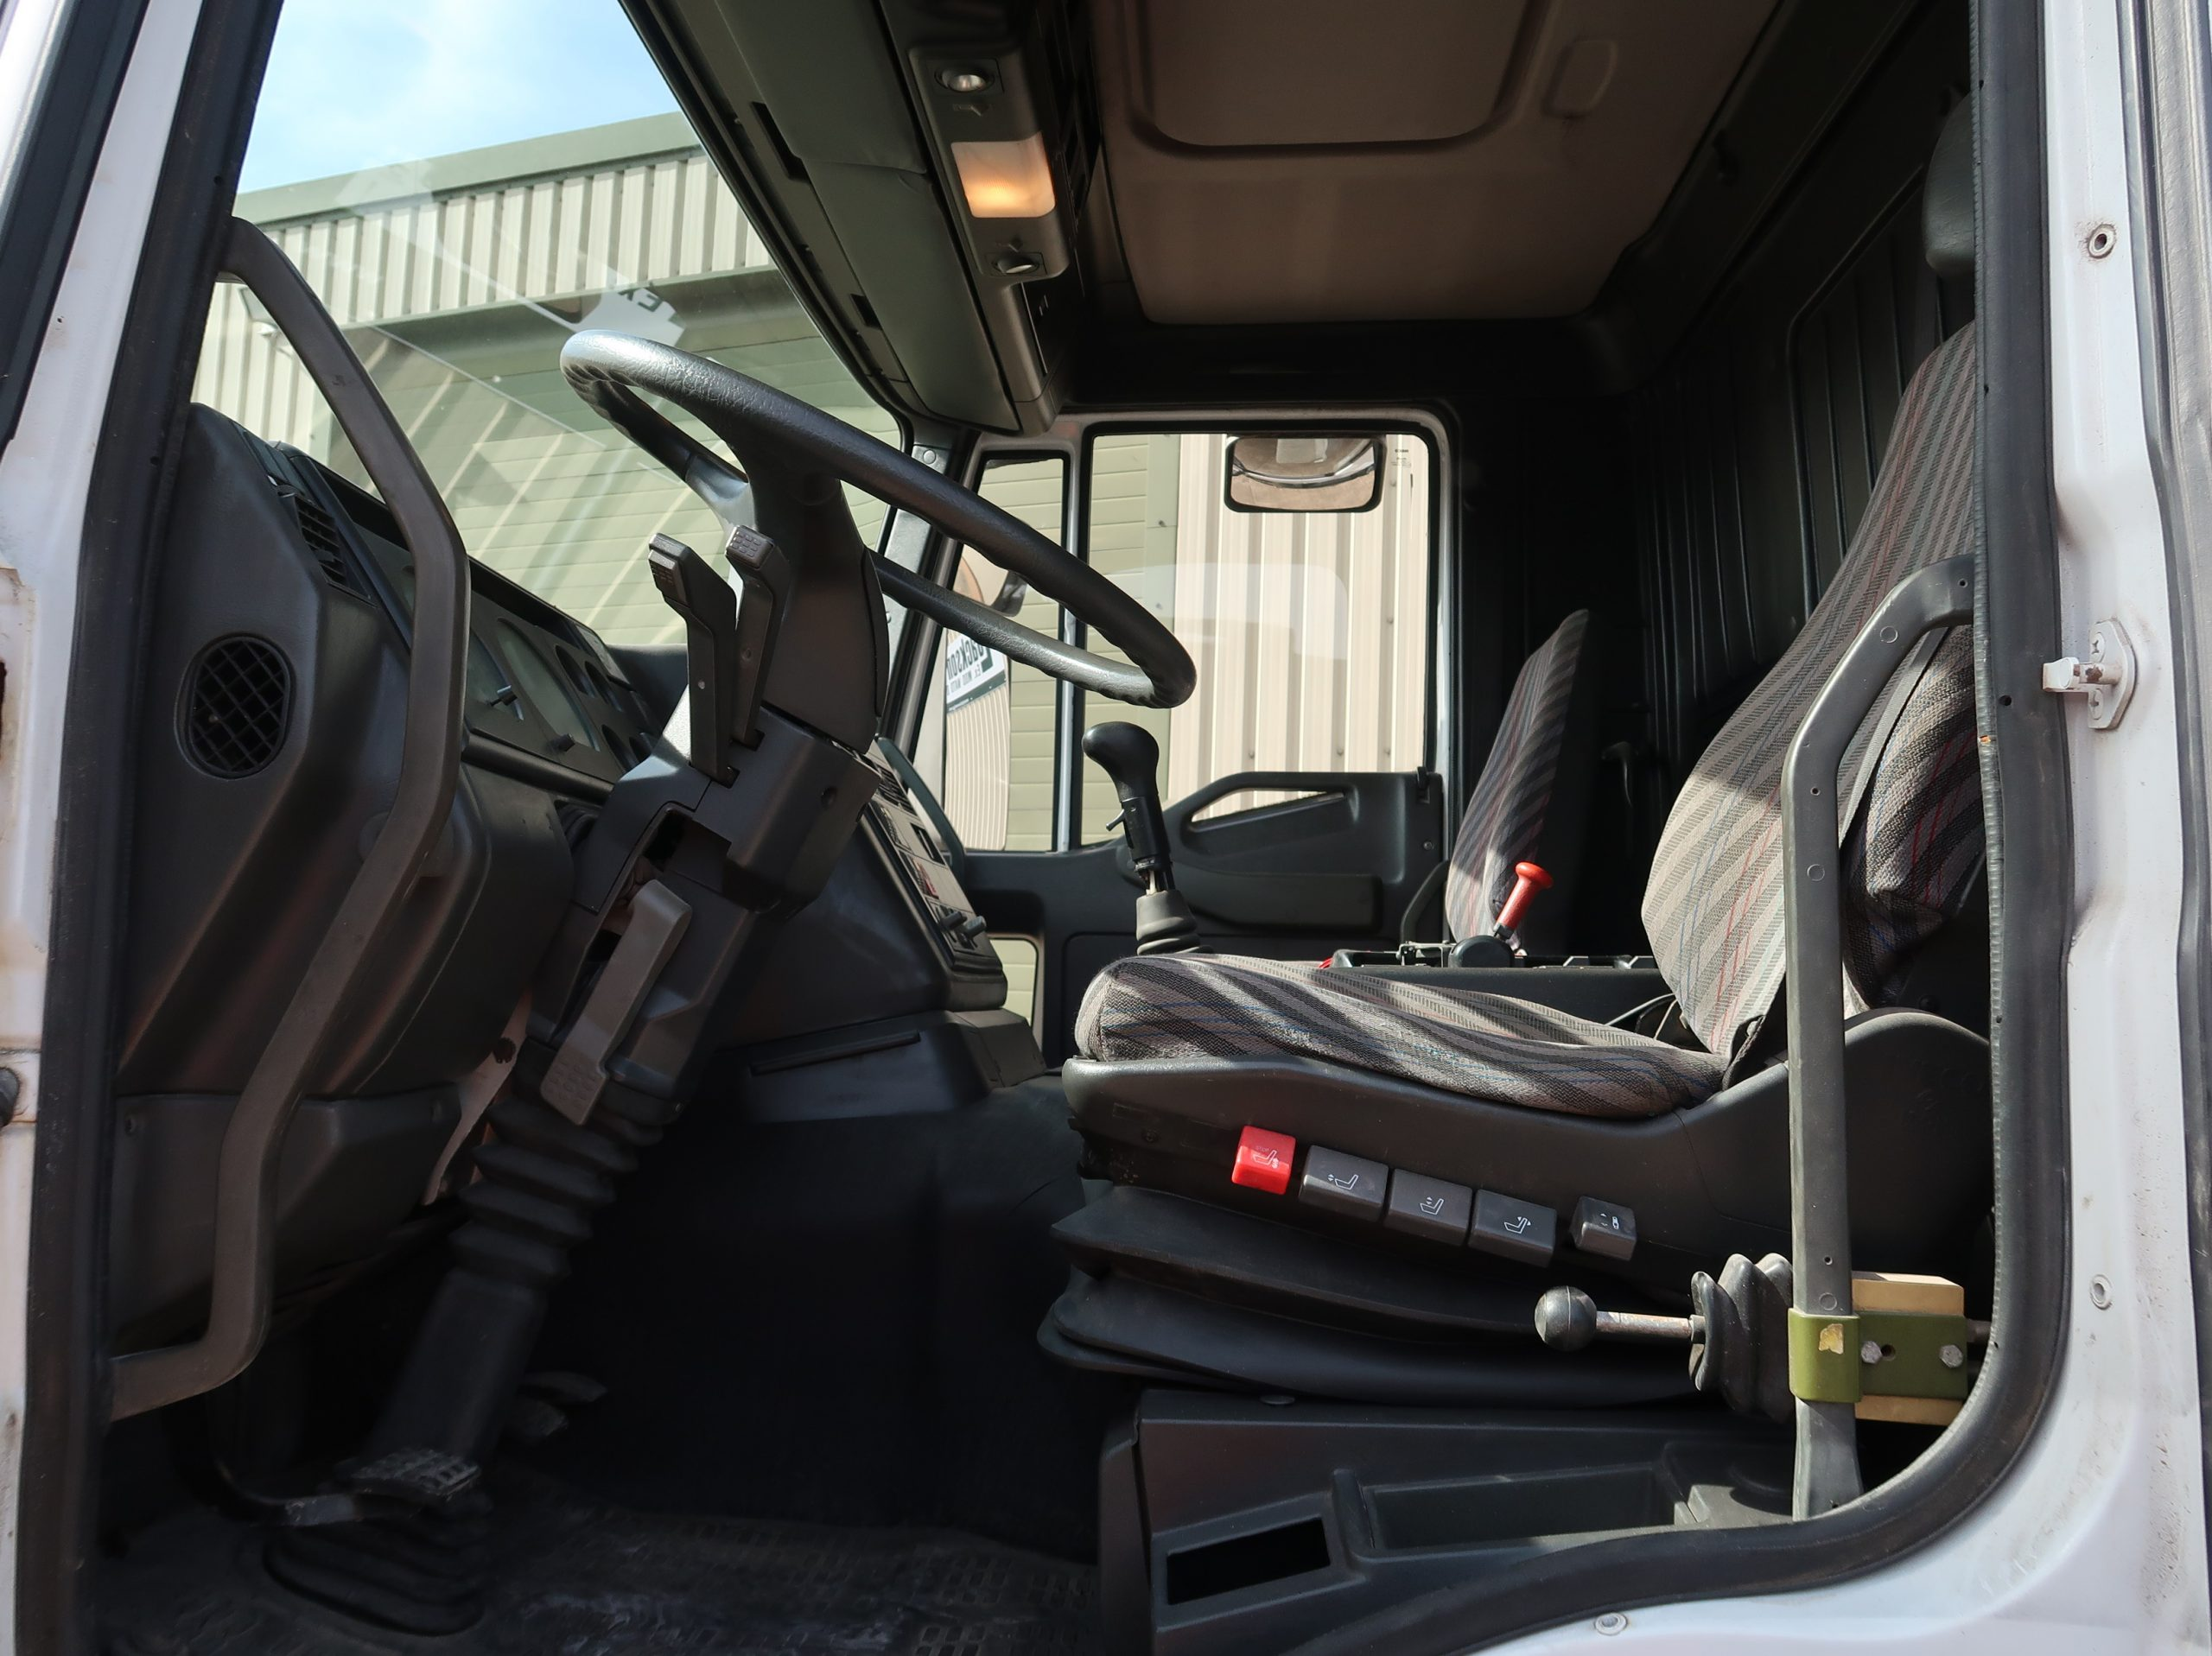 Iveco Eurotrakker 260E37 6x6 LHD tractor with crane 50317  military for sale